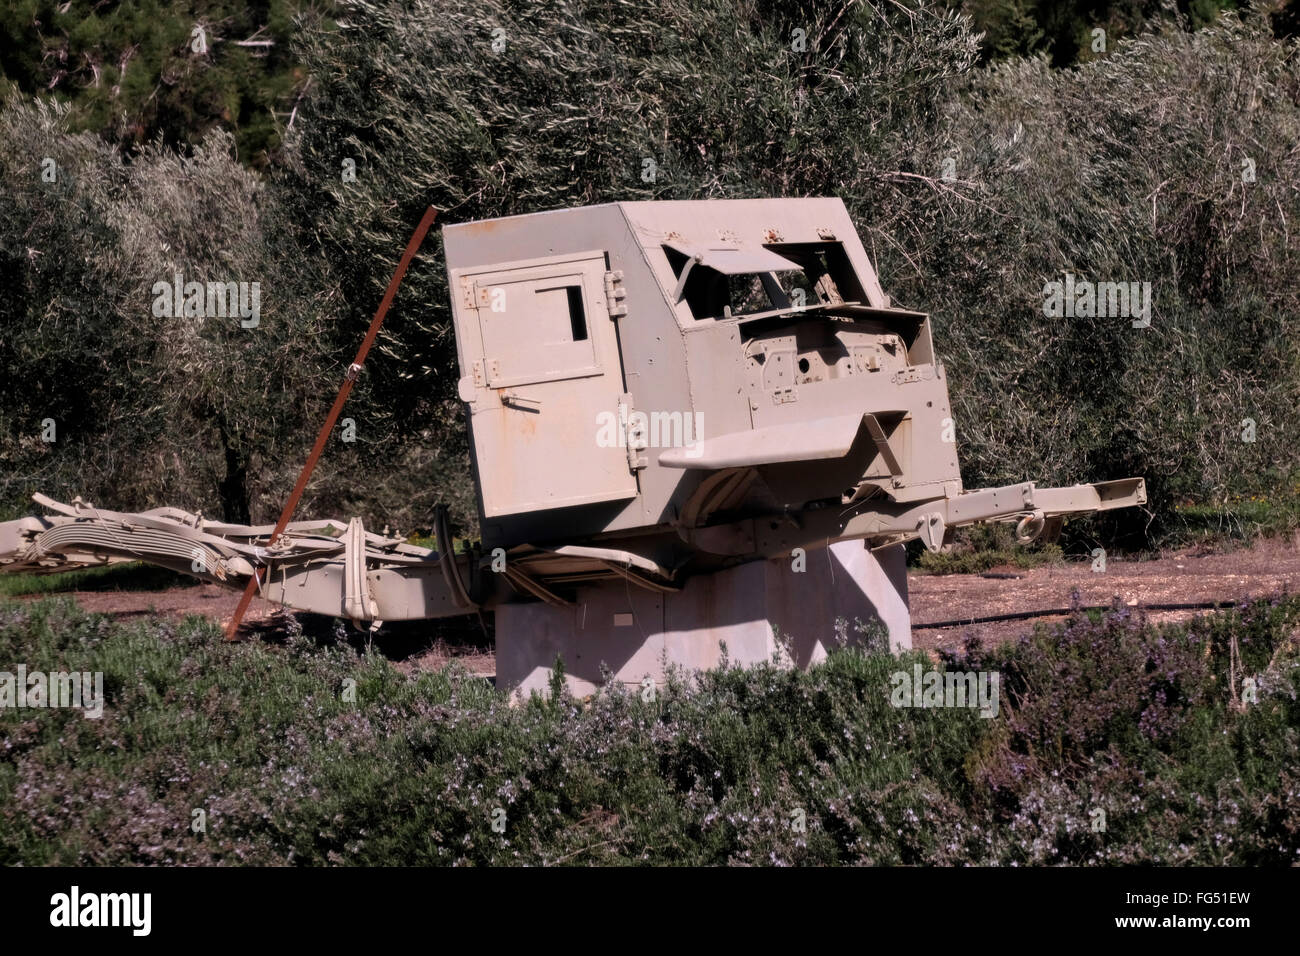 Remains of armored vehicle from 1948 war at Shaar Hagai or Bab El Wad on the main road from Tel Aviv to Jerusalem - Stock Image